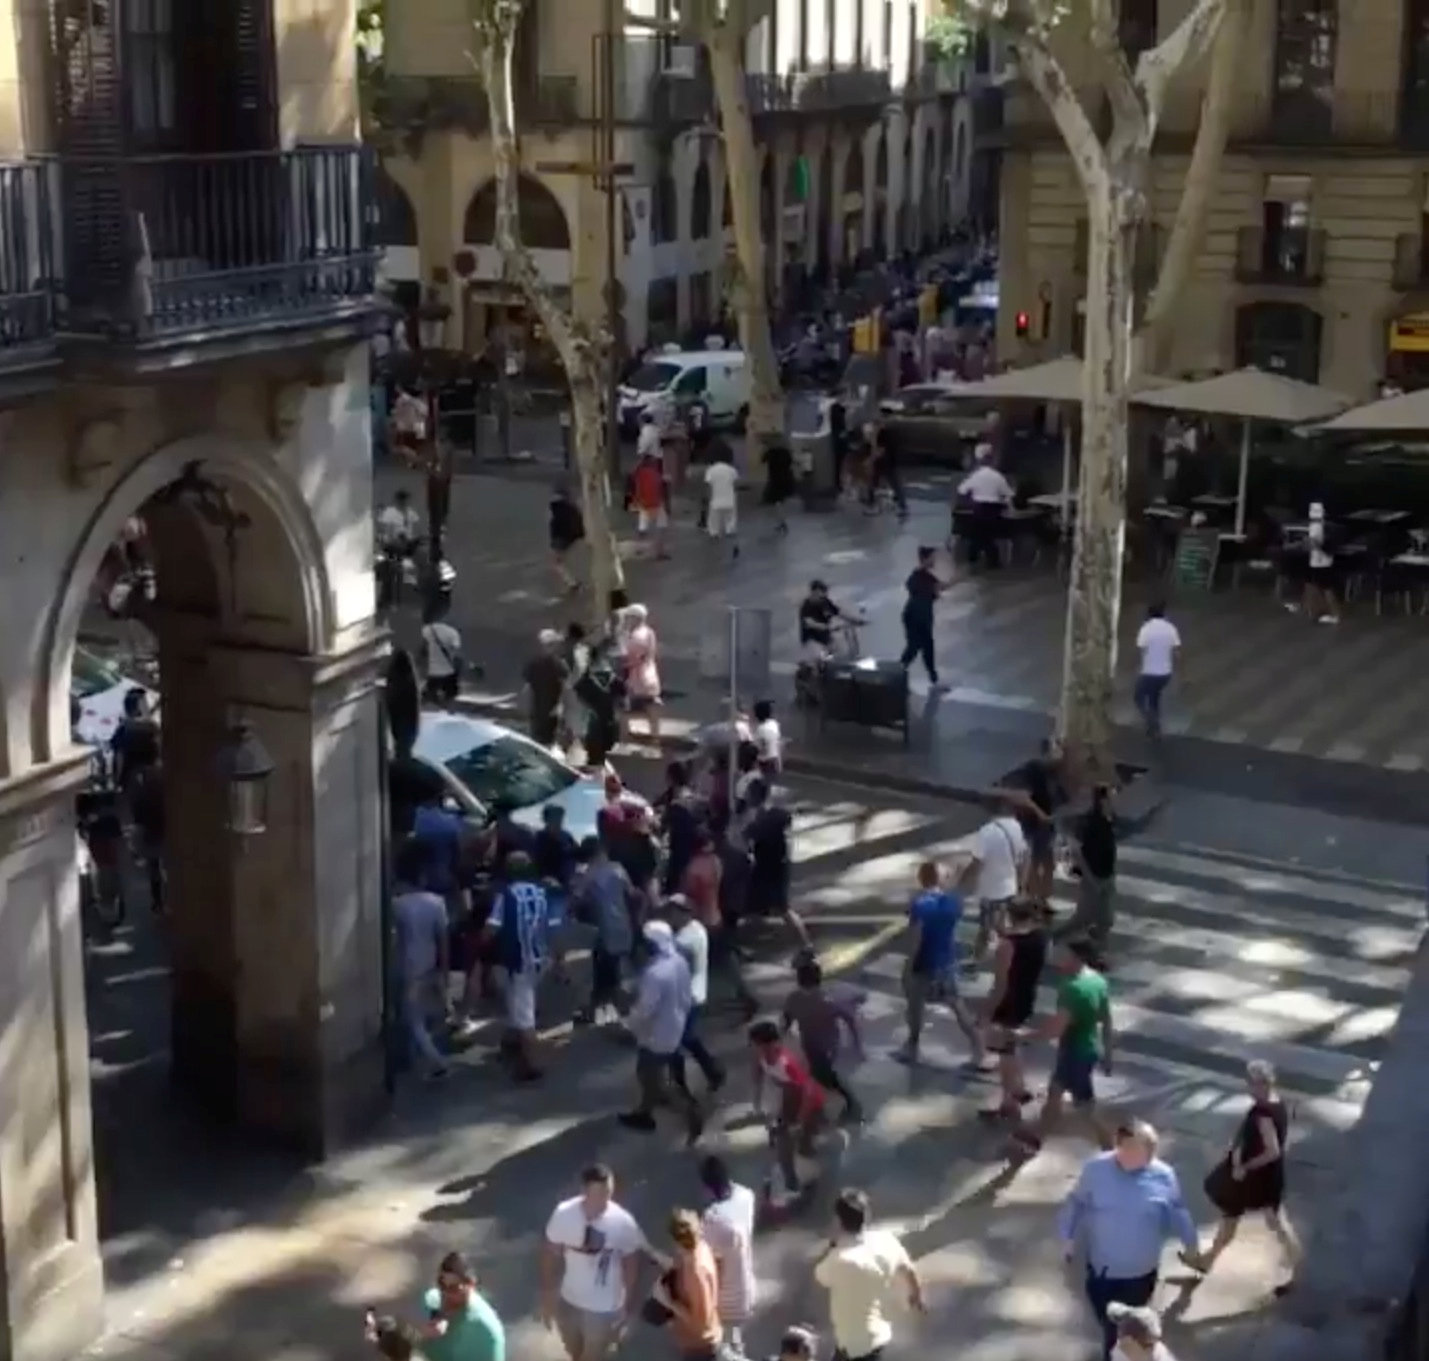 People move from the scene after a van crashed into pedestrians near the Las Ramblas avenue in central Barcelona, Spain August 17, 2017, in this still image from a video obtained from social media. Courtesy of McKenzie Tavoda/via REUTERS